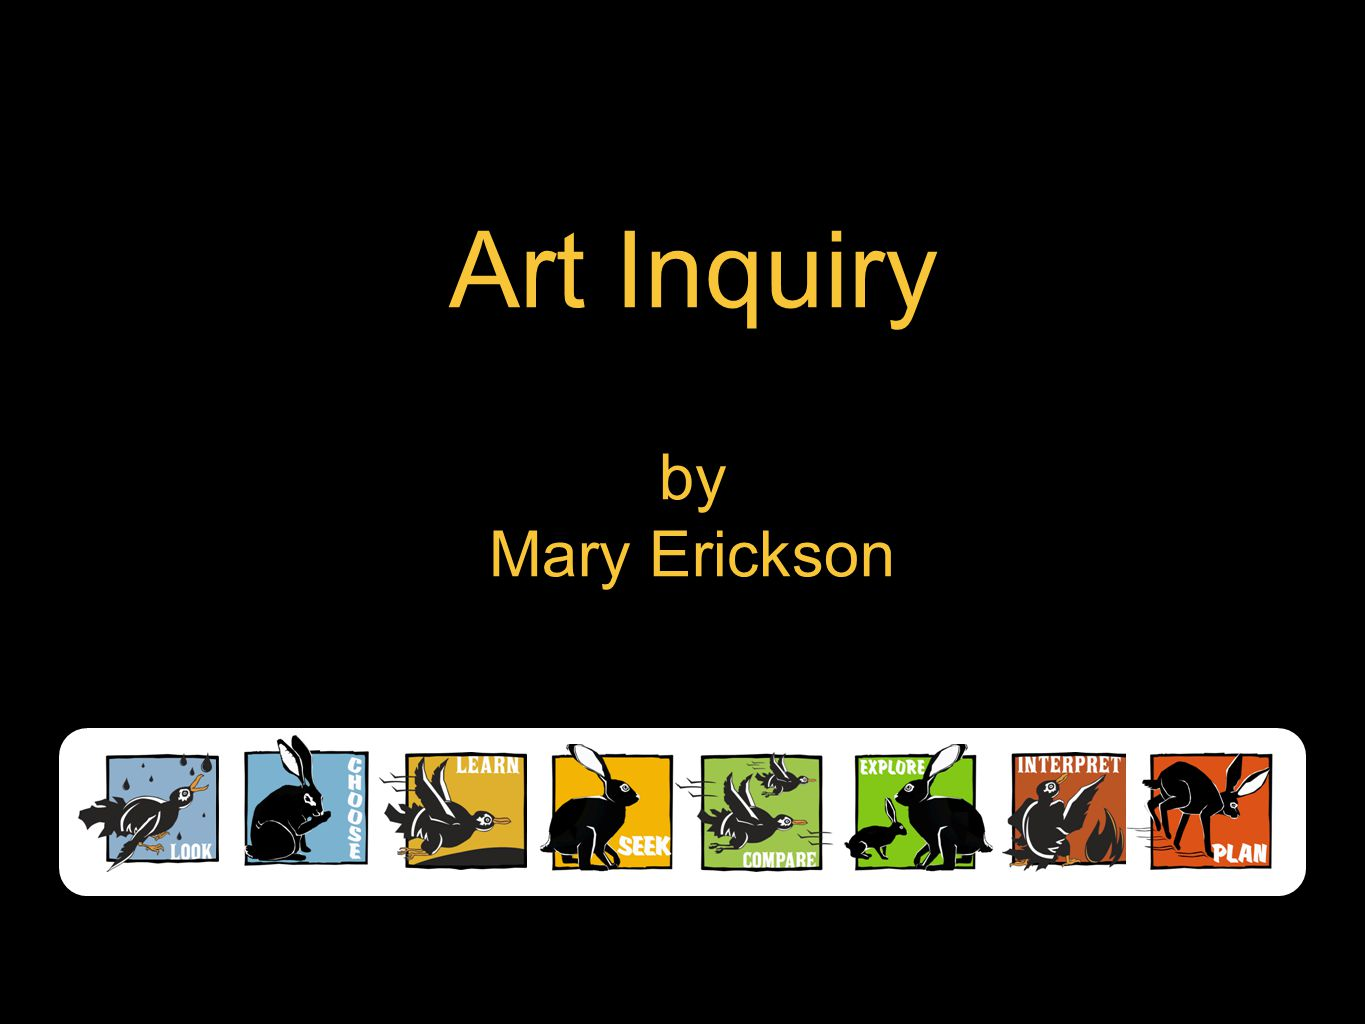 Art Inquiry by Mary Erickson